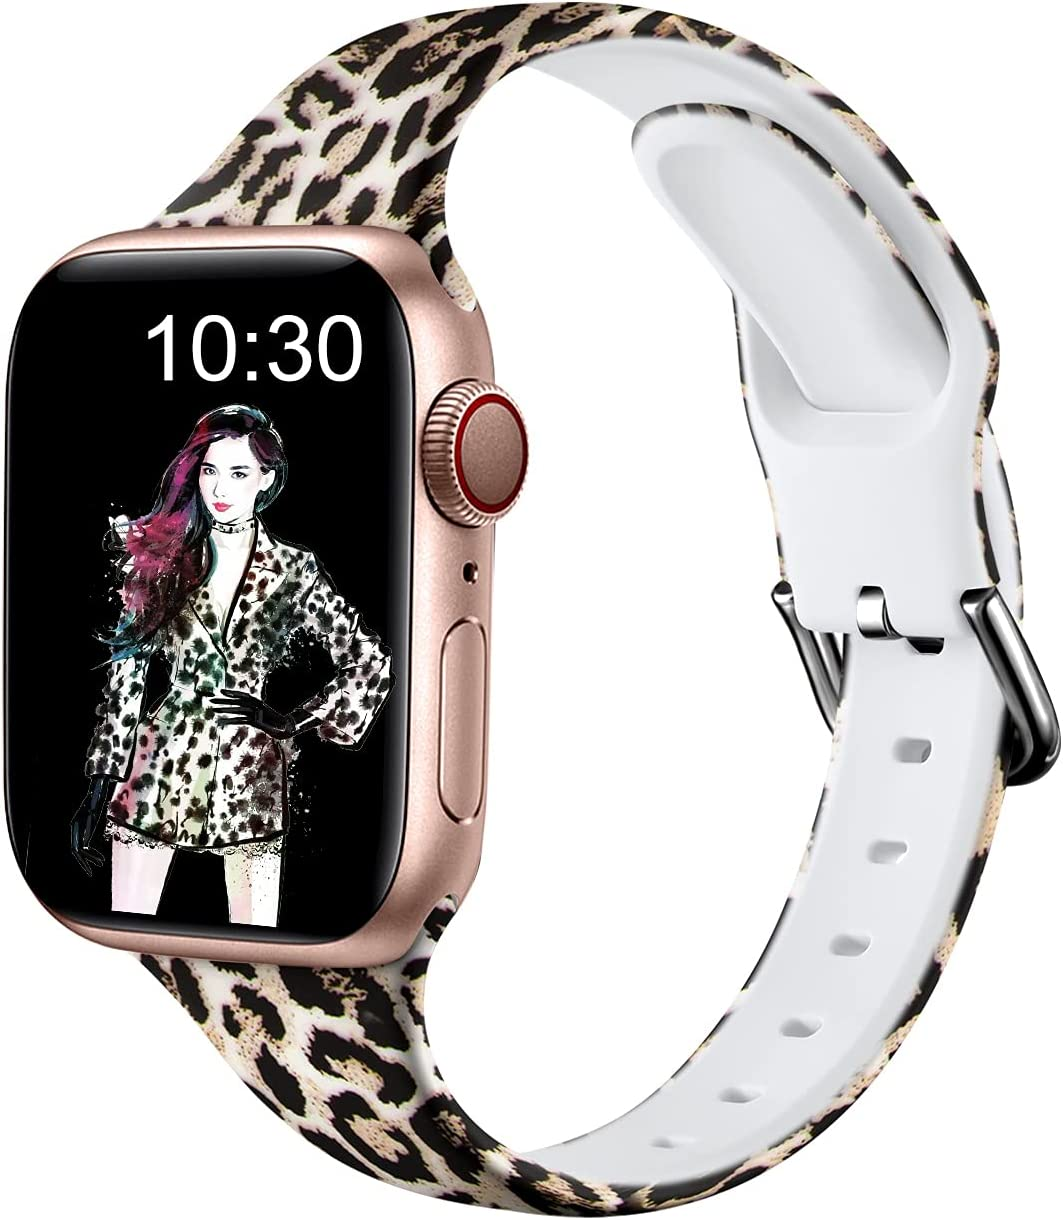 Nofeda Bands Compatible with Apple Watch band 38mm 40mm iWatch Series 6 5 4 3 2 1 & SE, Slim Silicone Printed Fadeless Replacement Strap Band for Women Men, Leopard